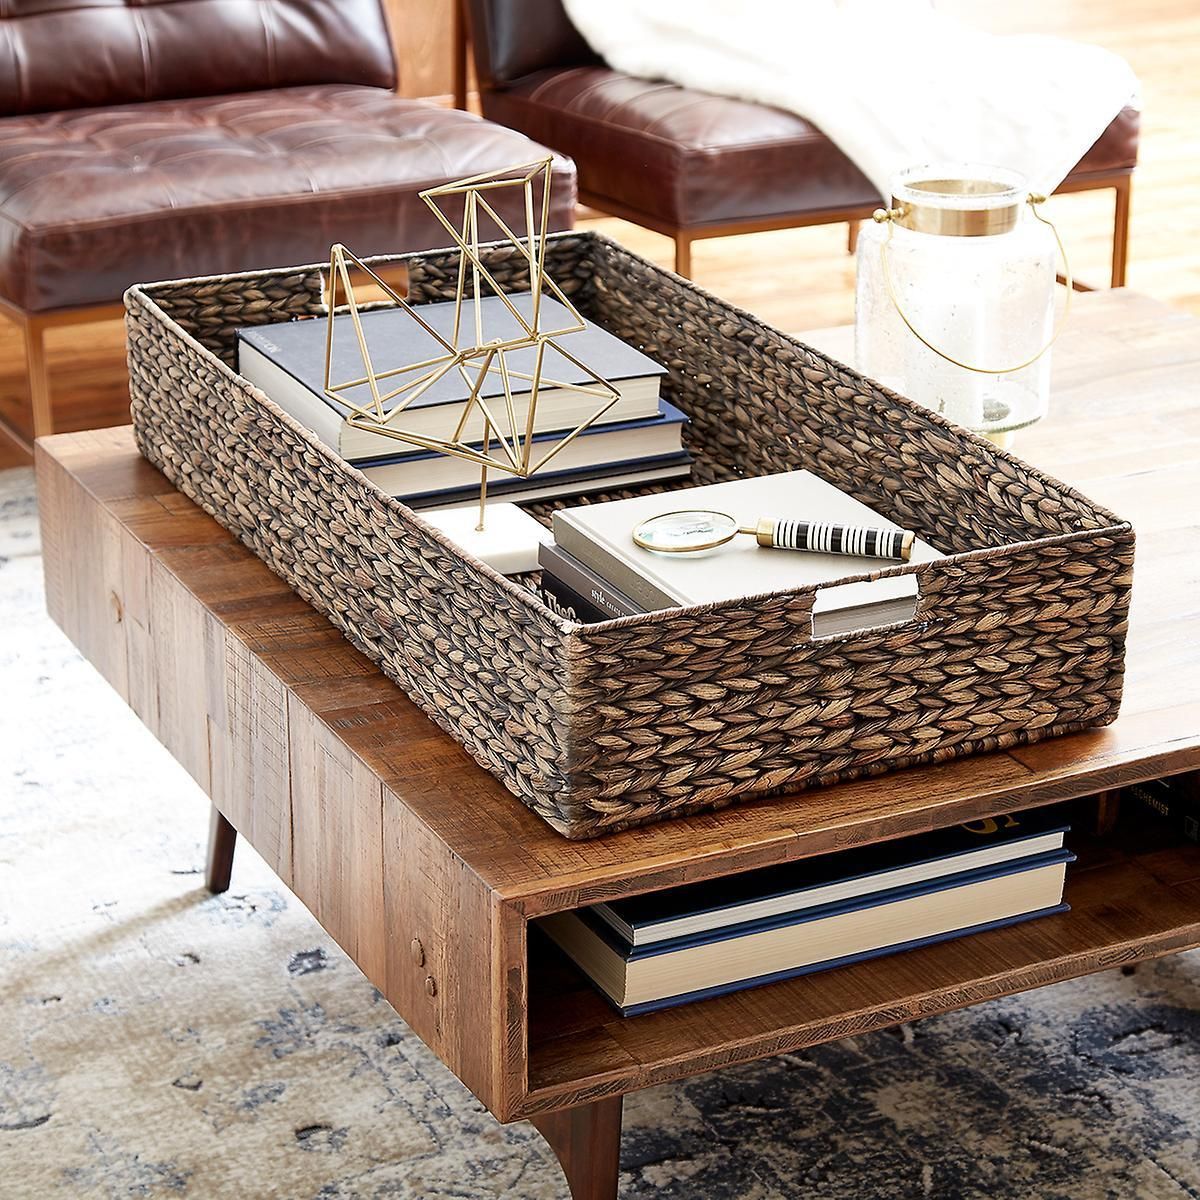 Add a touch of style and organization to your coffee table ...